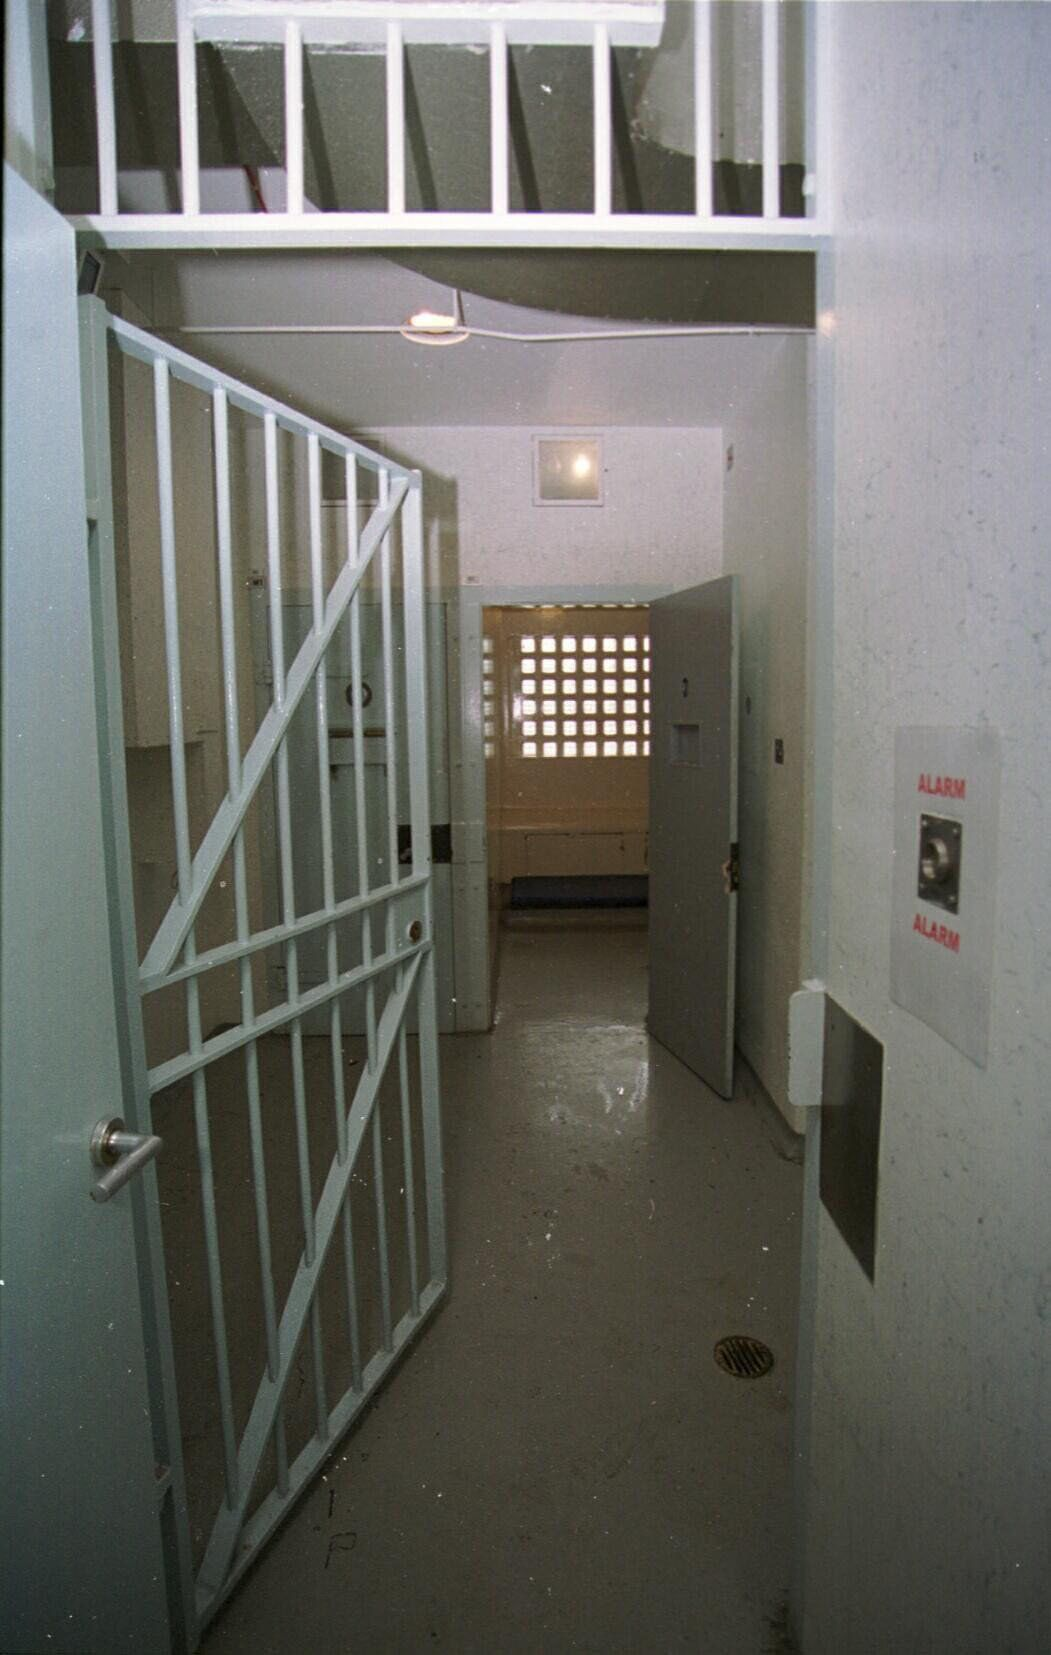 Women Detainees On Periods Left To 'Bleed Out' In Possible Breach Of Human Rights